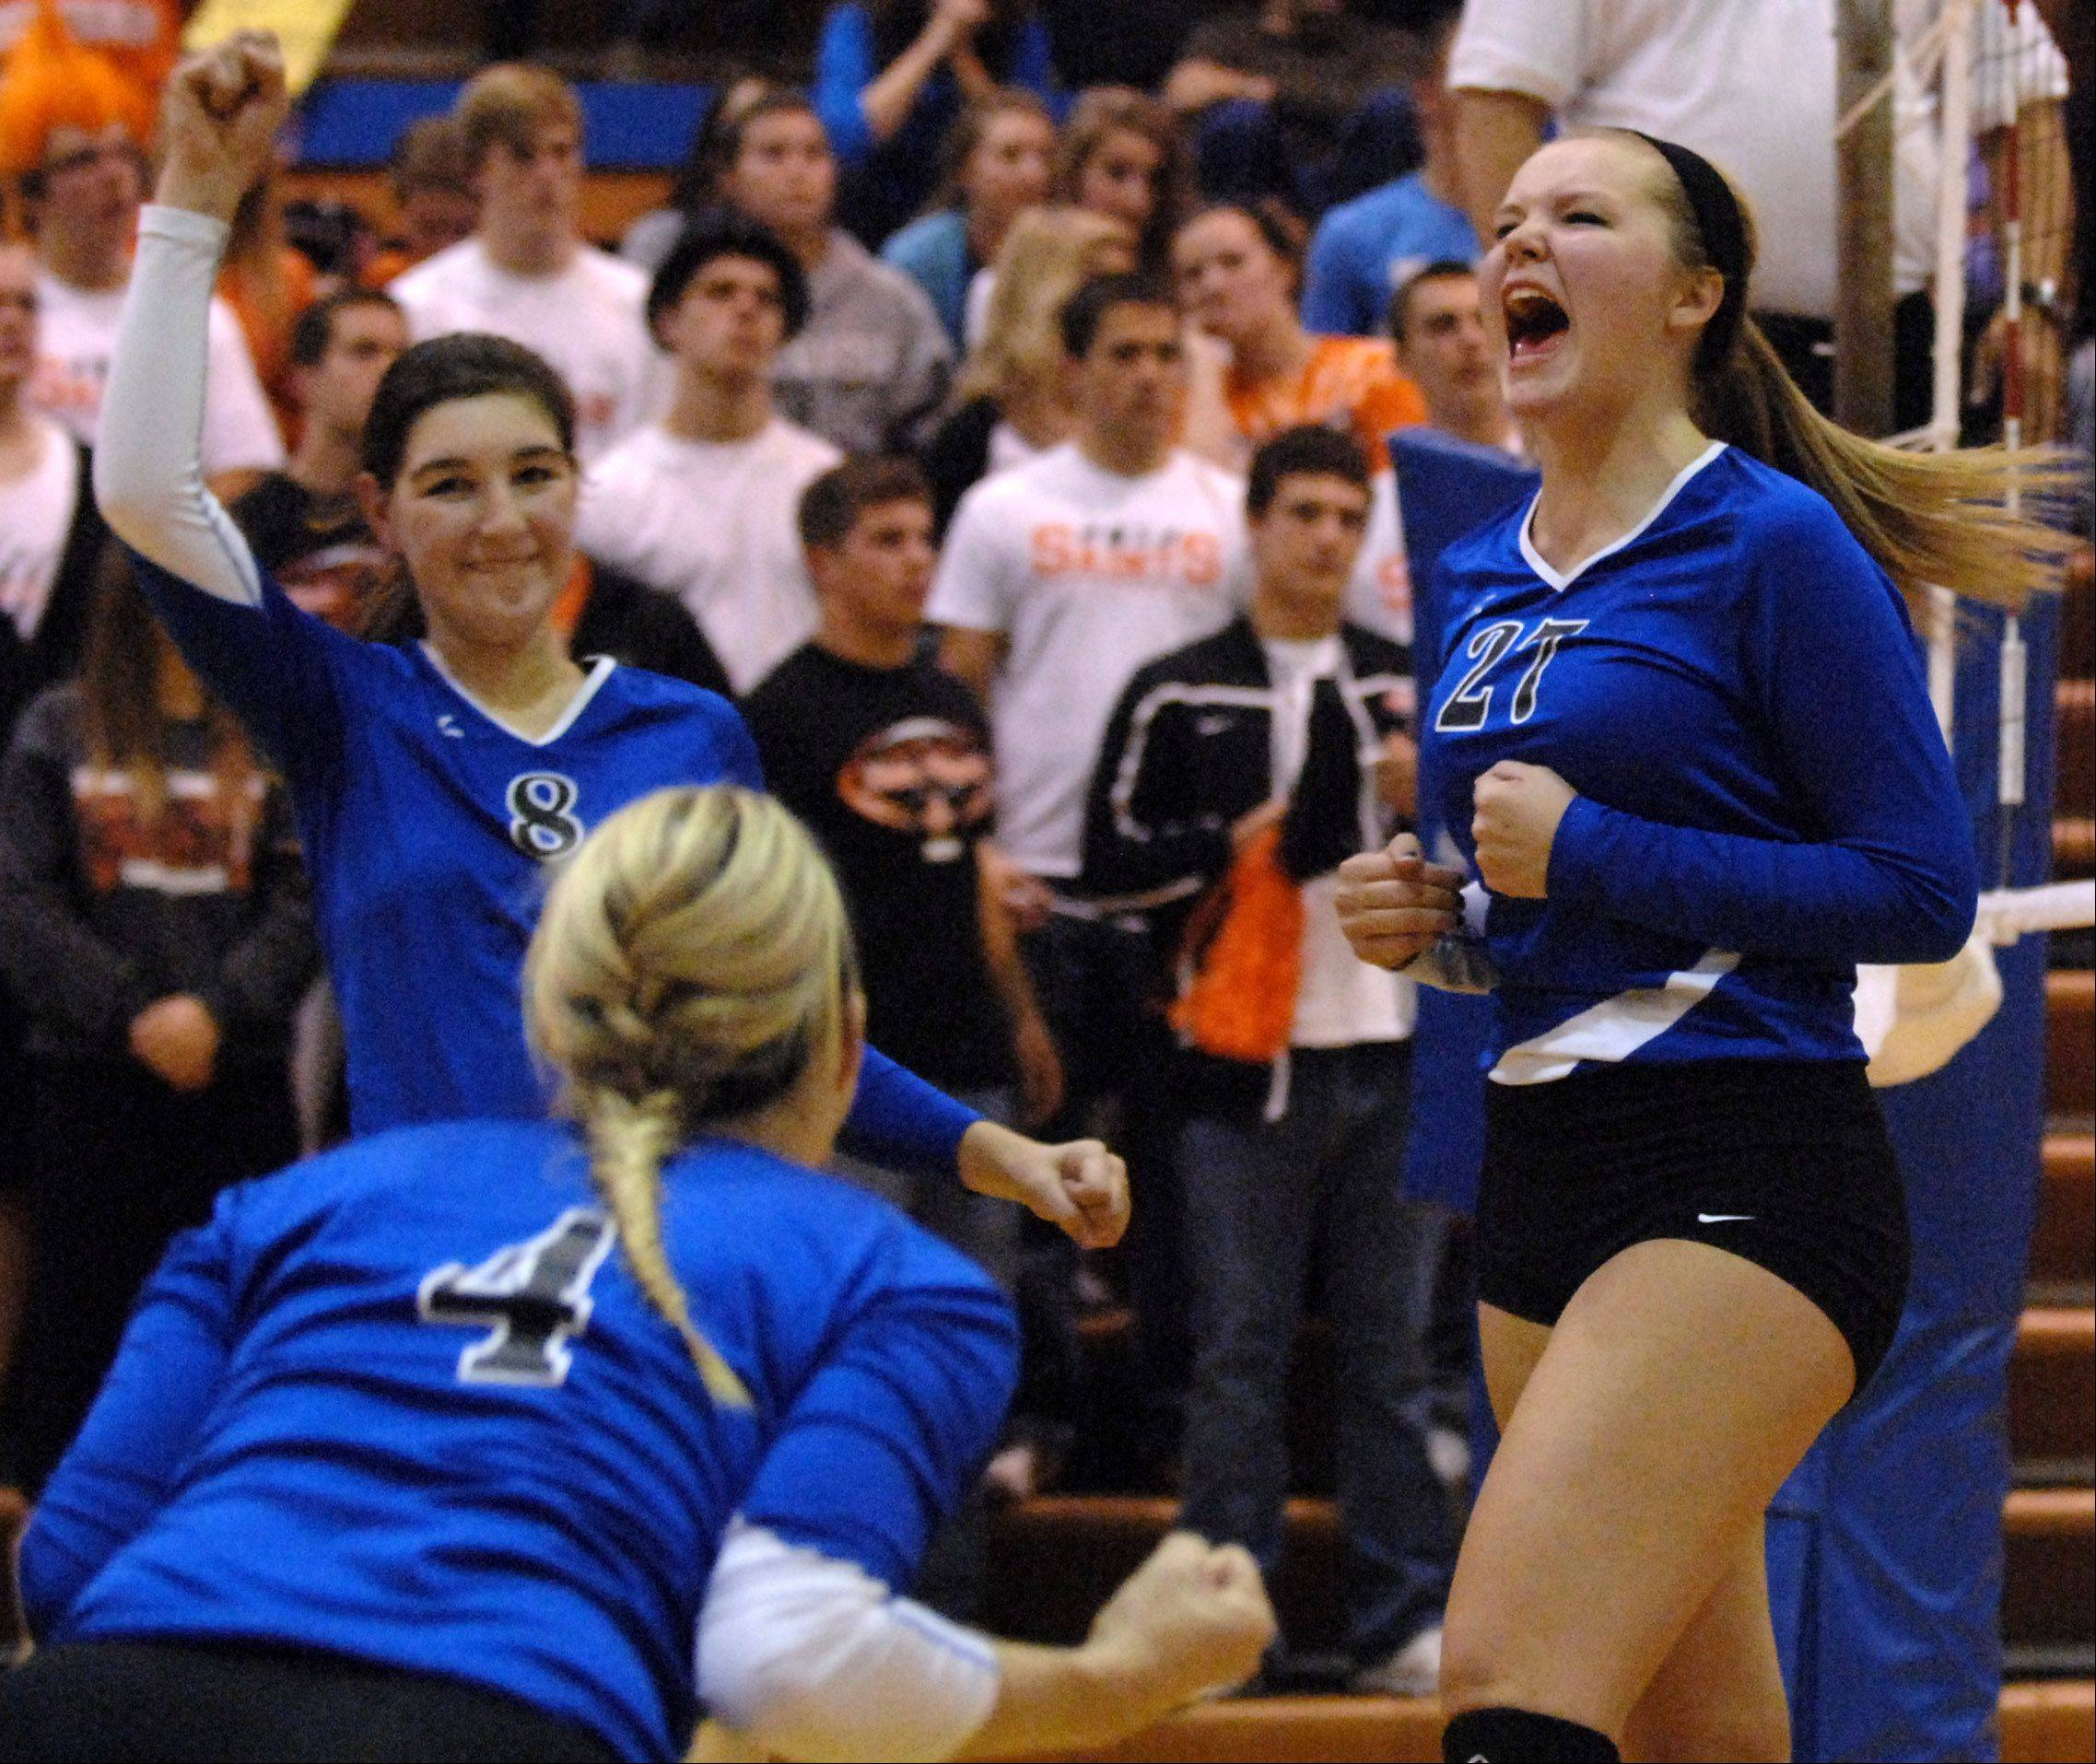 Geneva's Taylor Marmitt (right) and her teammates start to get excited as they get to match point against St. Charles East during Tuesday's sectional semifinals at Larkin High School in Elgin.